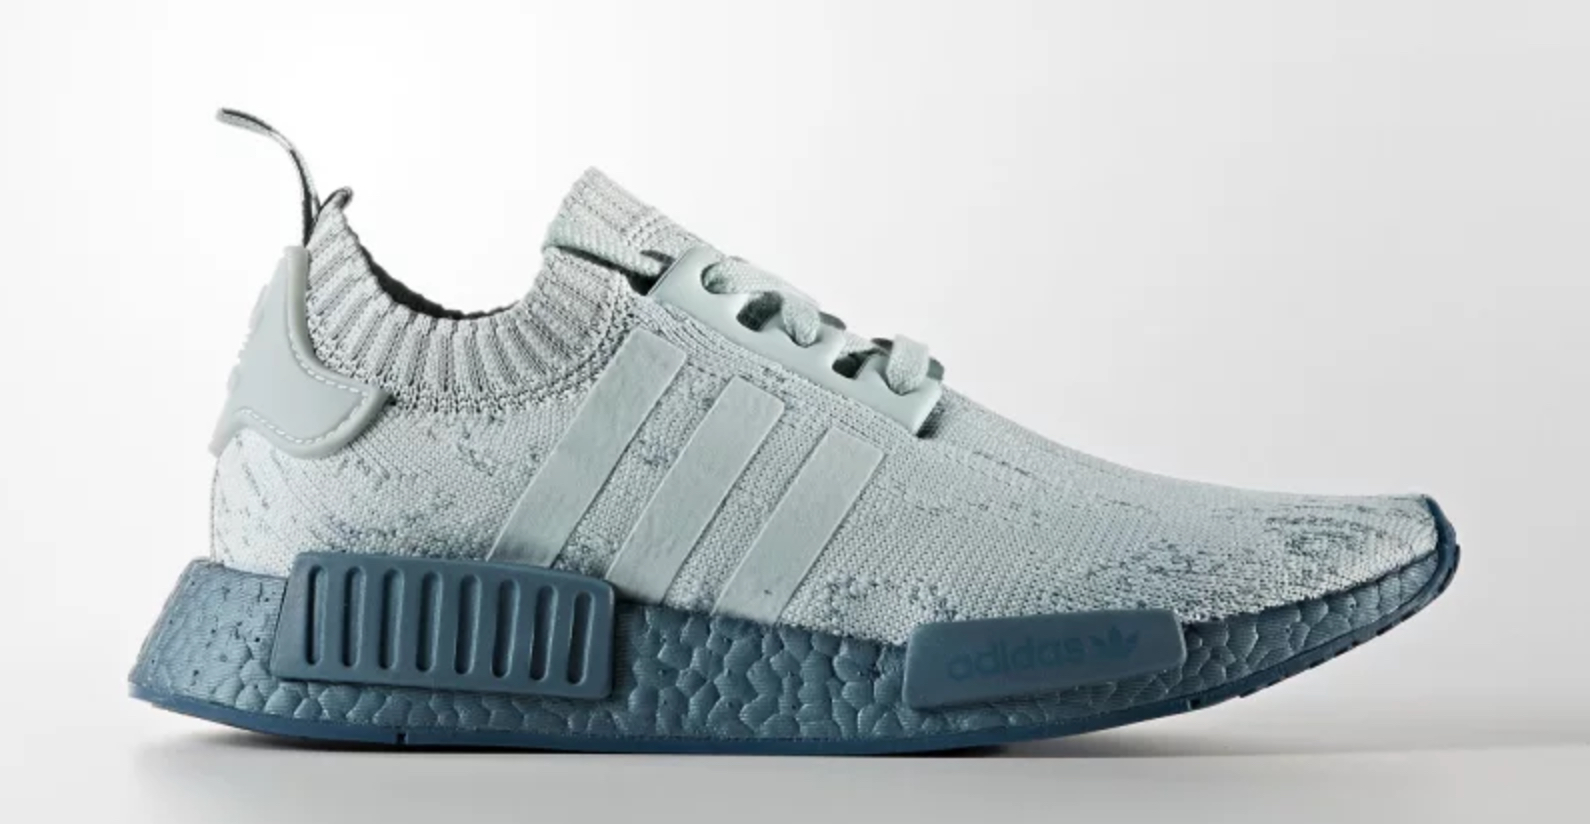 Adidas NMD R1 Primeknit Winter Wool Pack News PRAISE